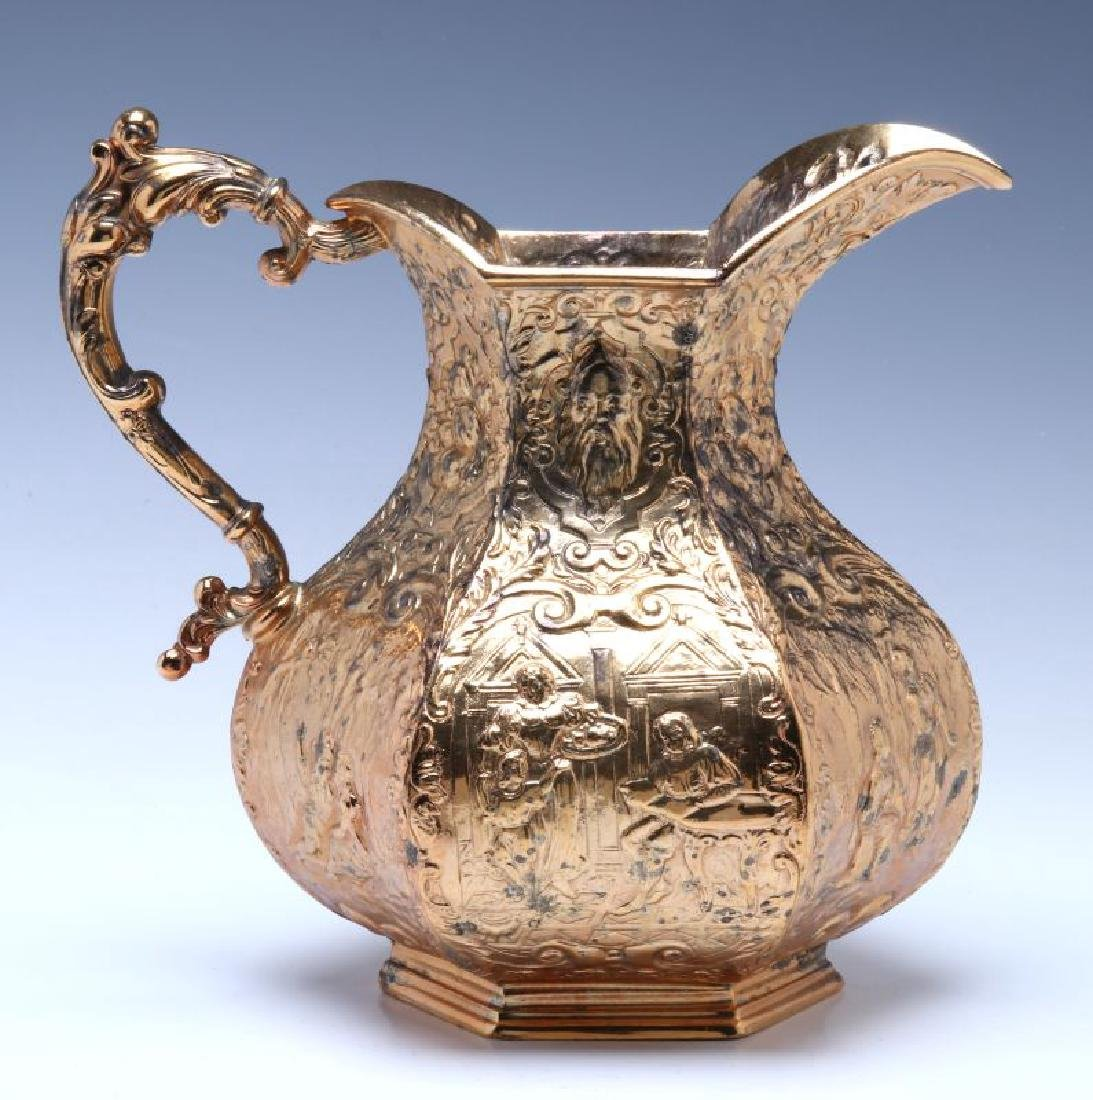 CIRCA 1900 FRENCH RENAISSANCE REVIVAL WATER PITCHER